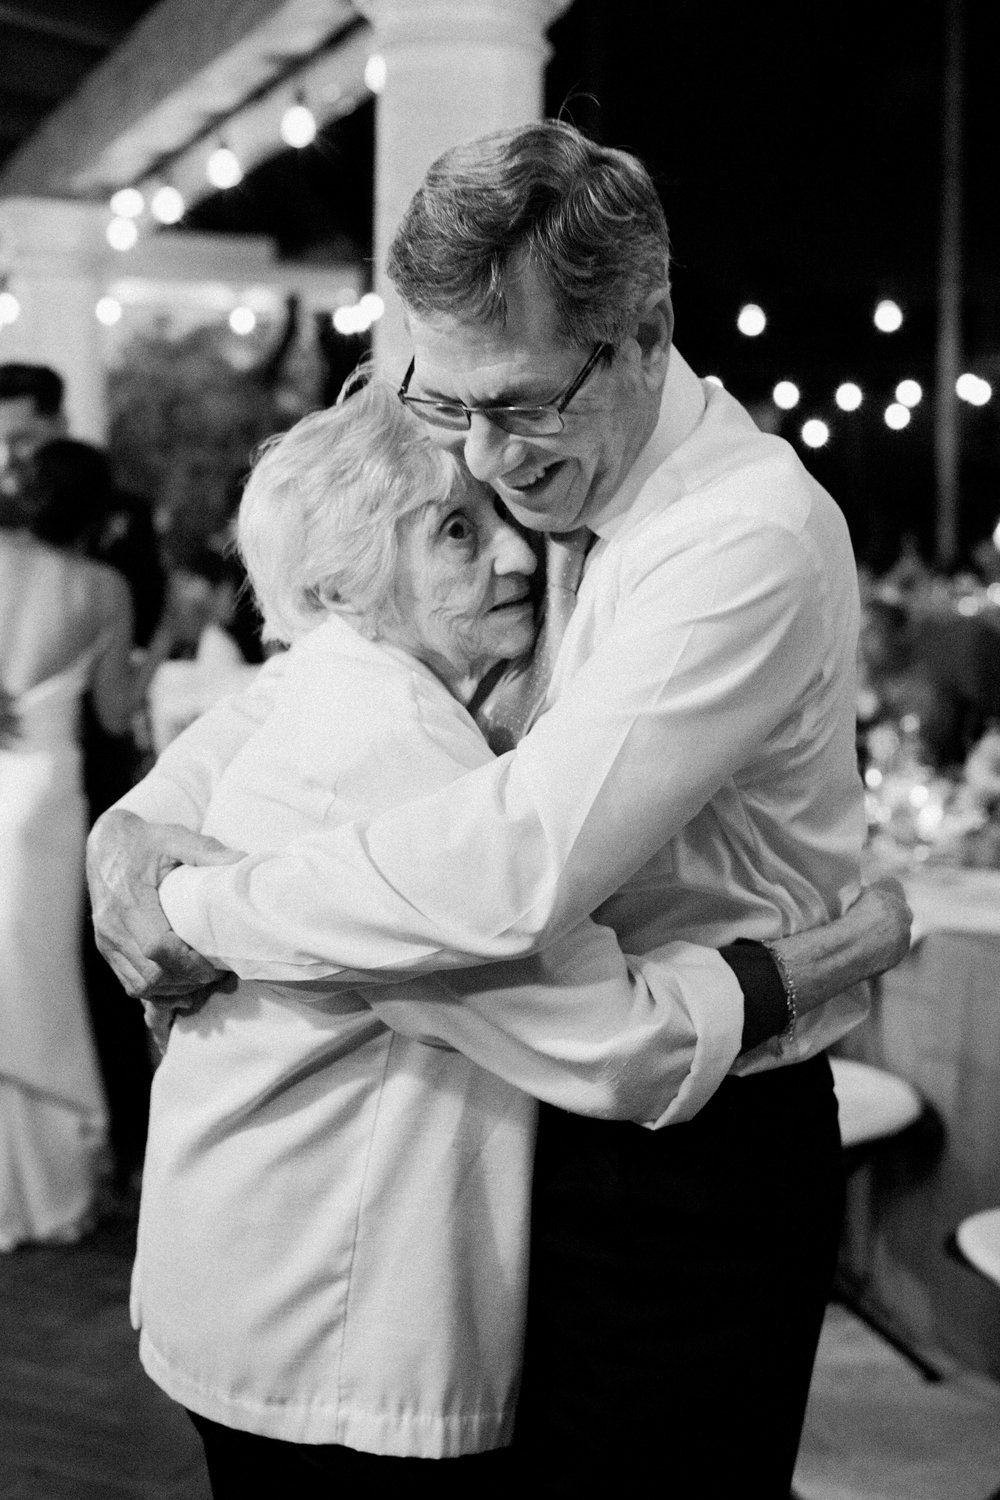 50-mother-son-wedding-dance.jpg